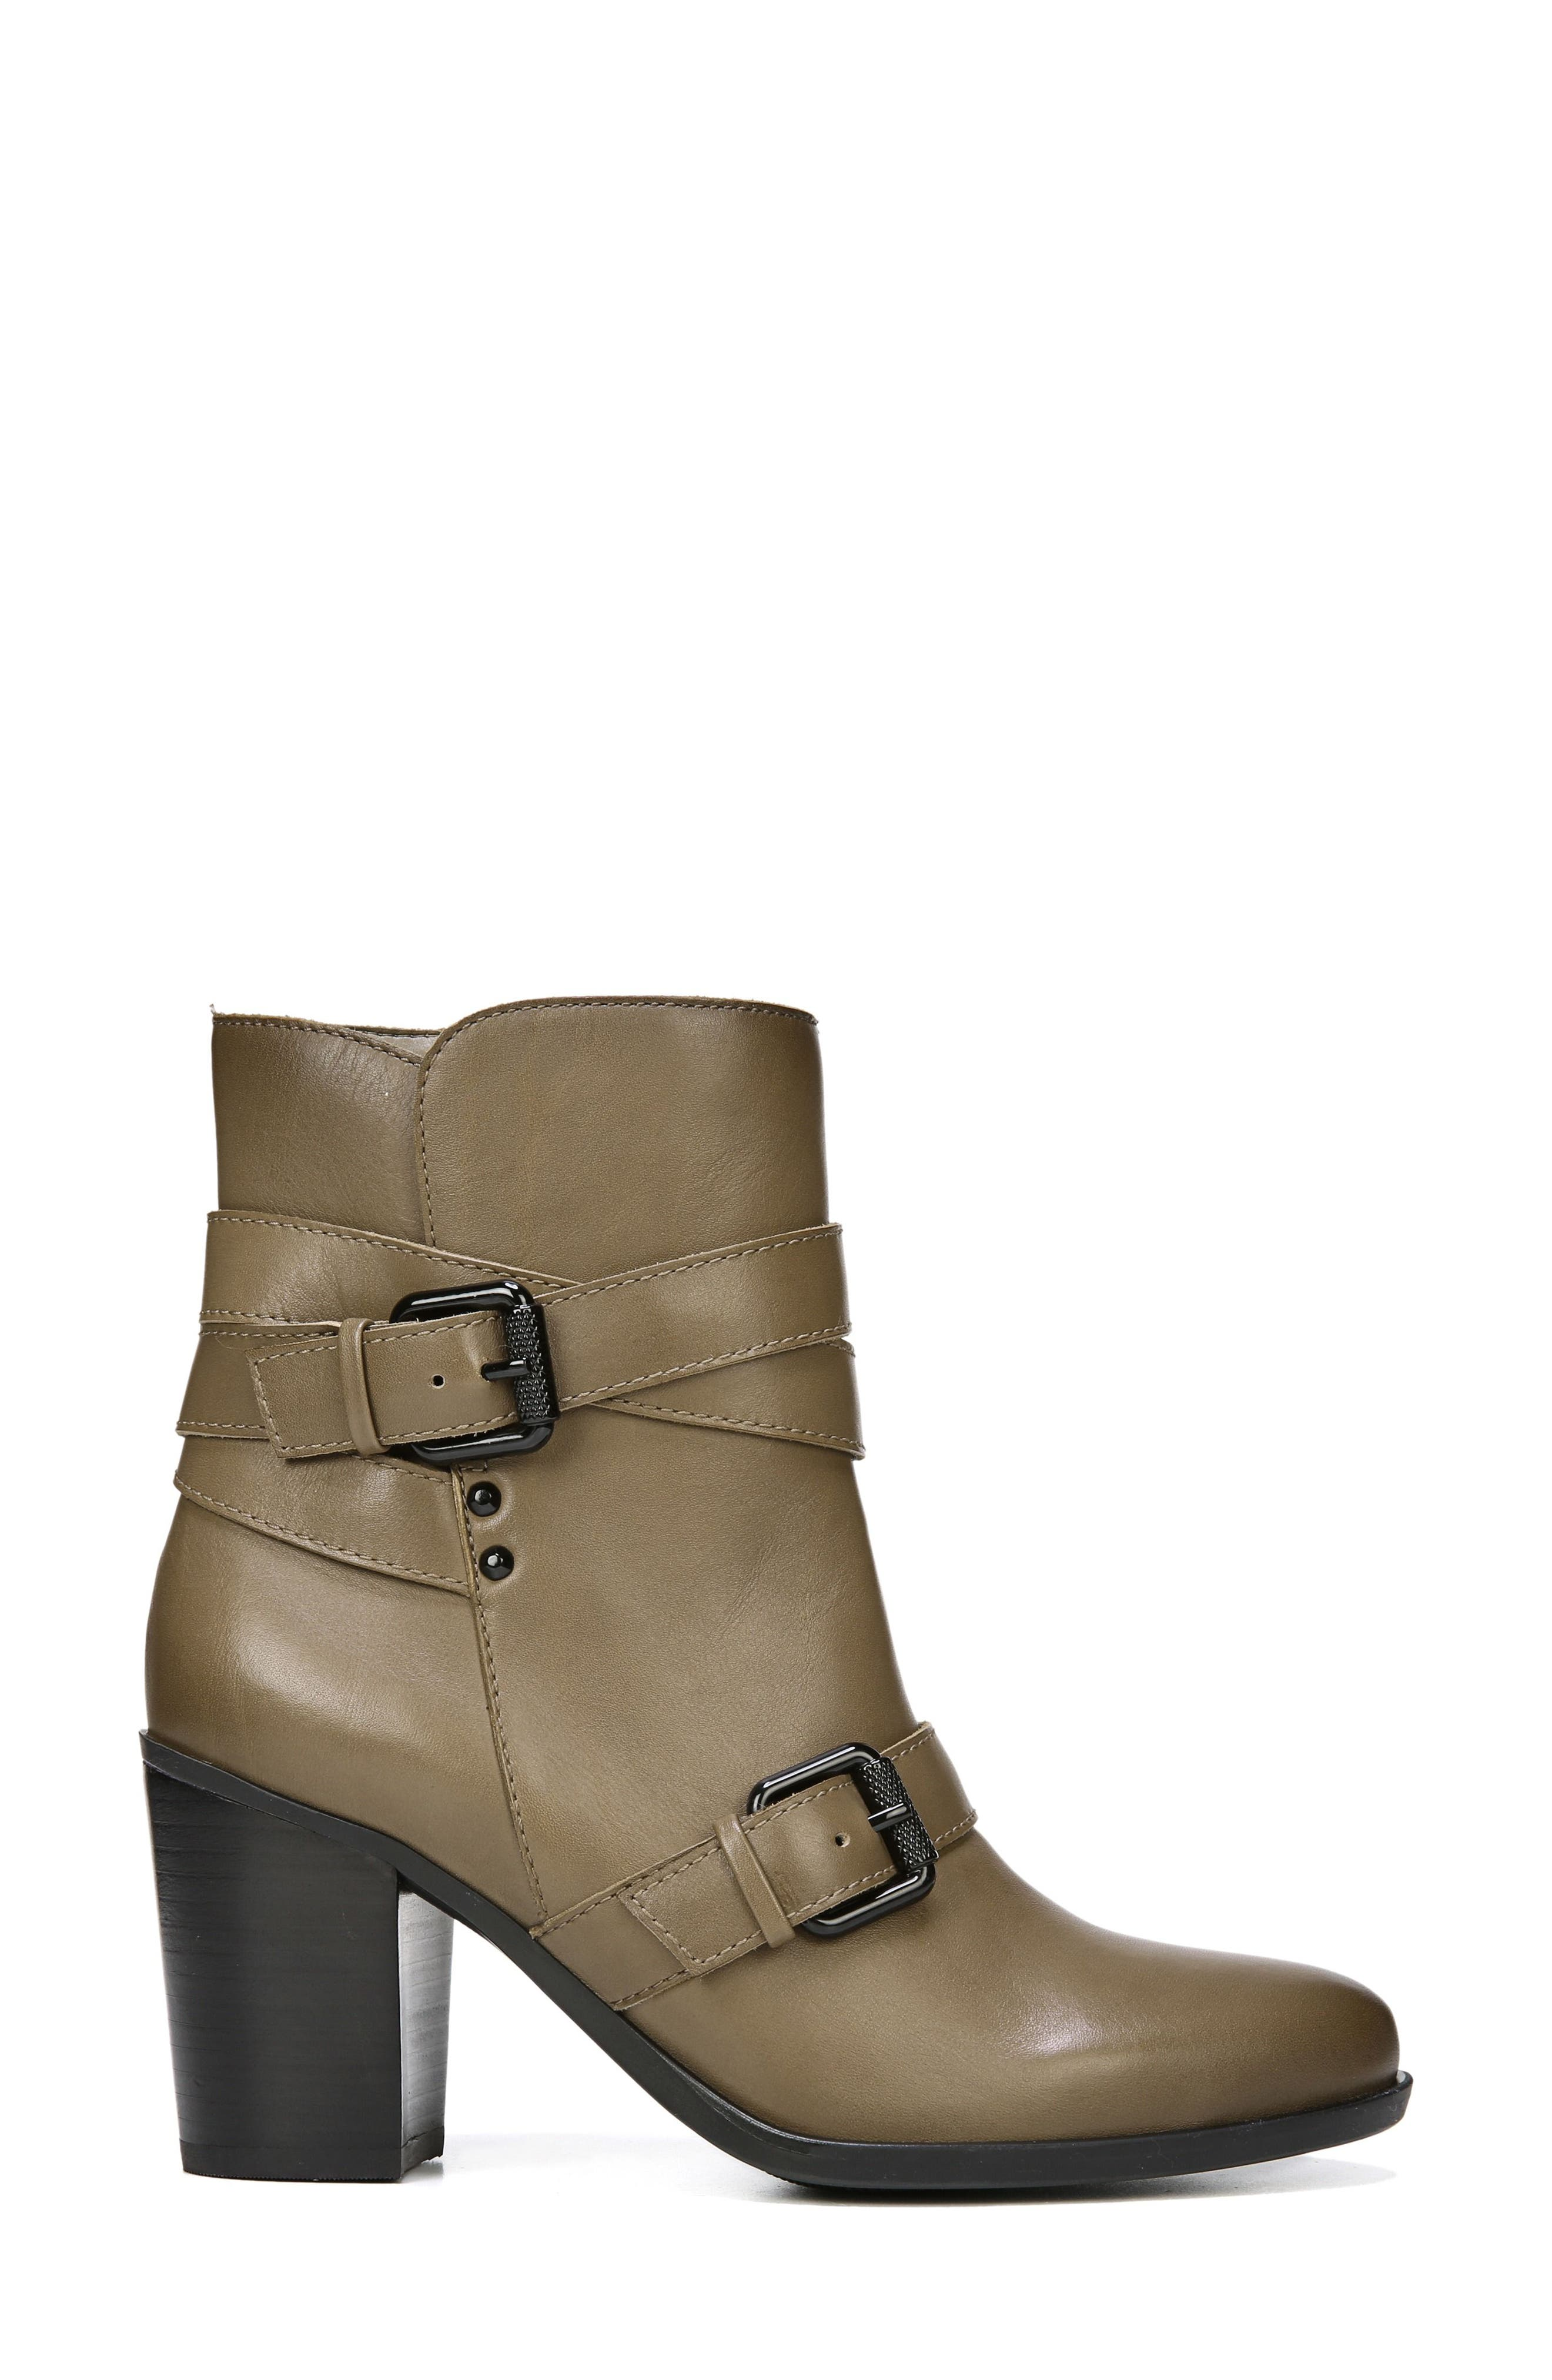 Alternate Image 3  - Naturalizer Karlie Buckle Bootie (Women)